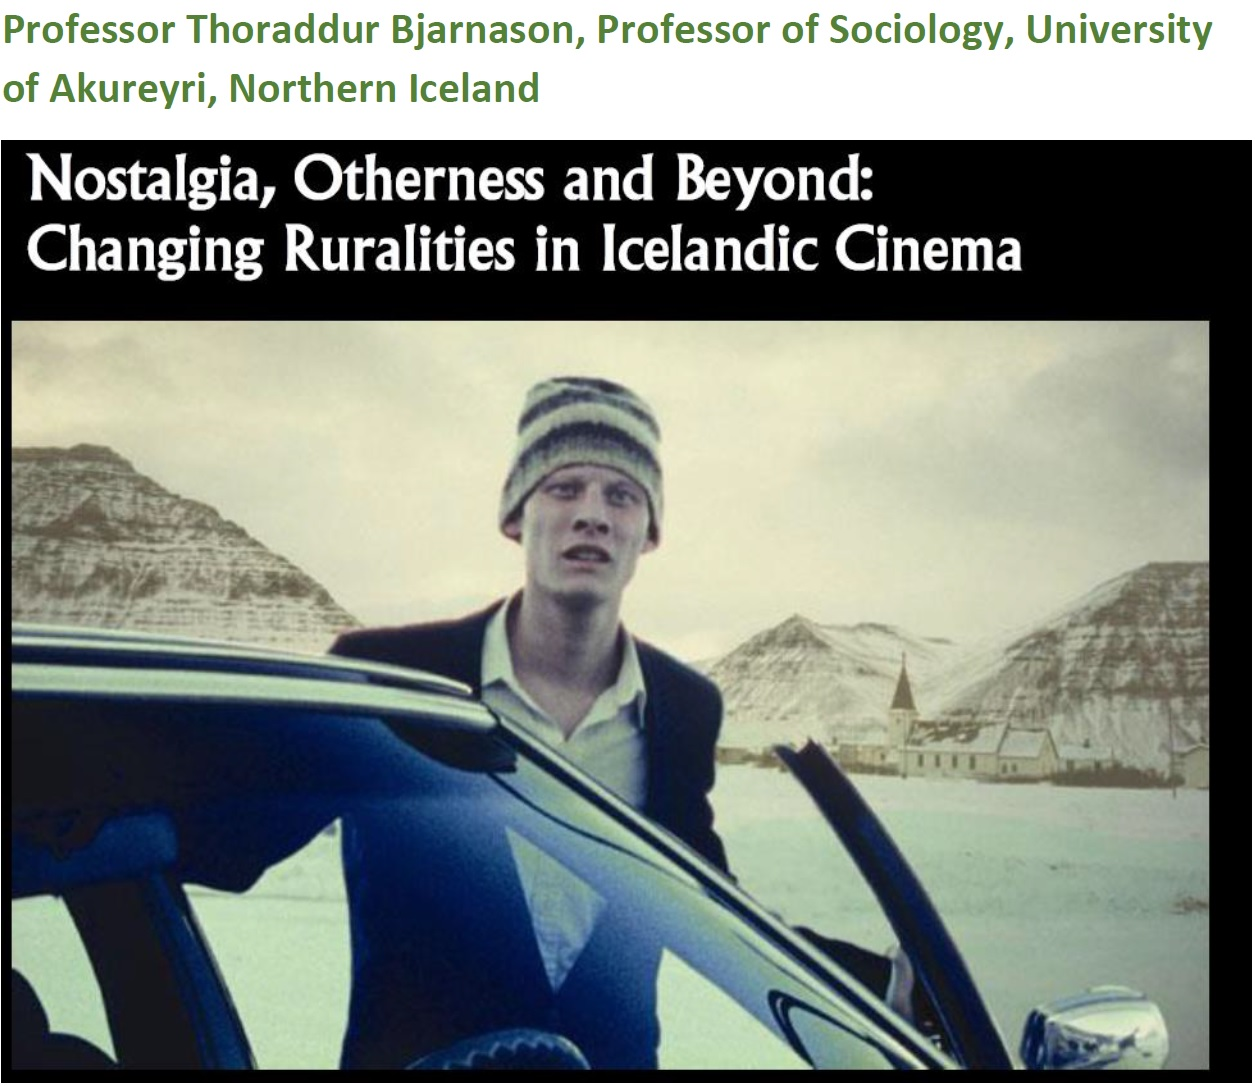 Nostalgia, Otherness and Beyond: Changing Ruralities in Icelandic Cinema-image